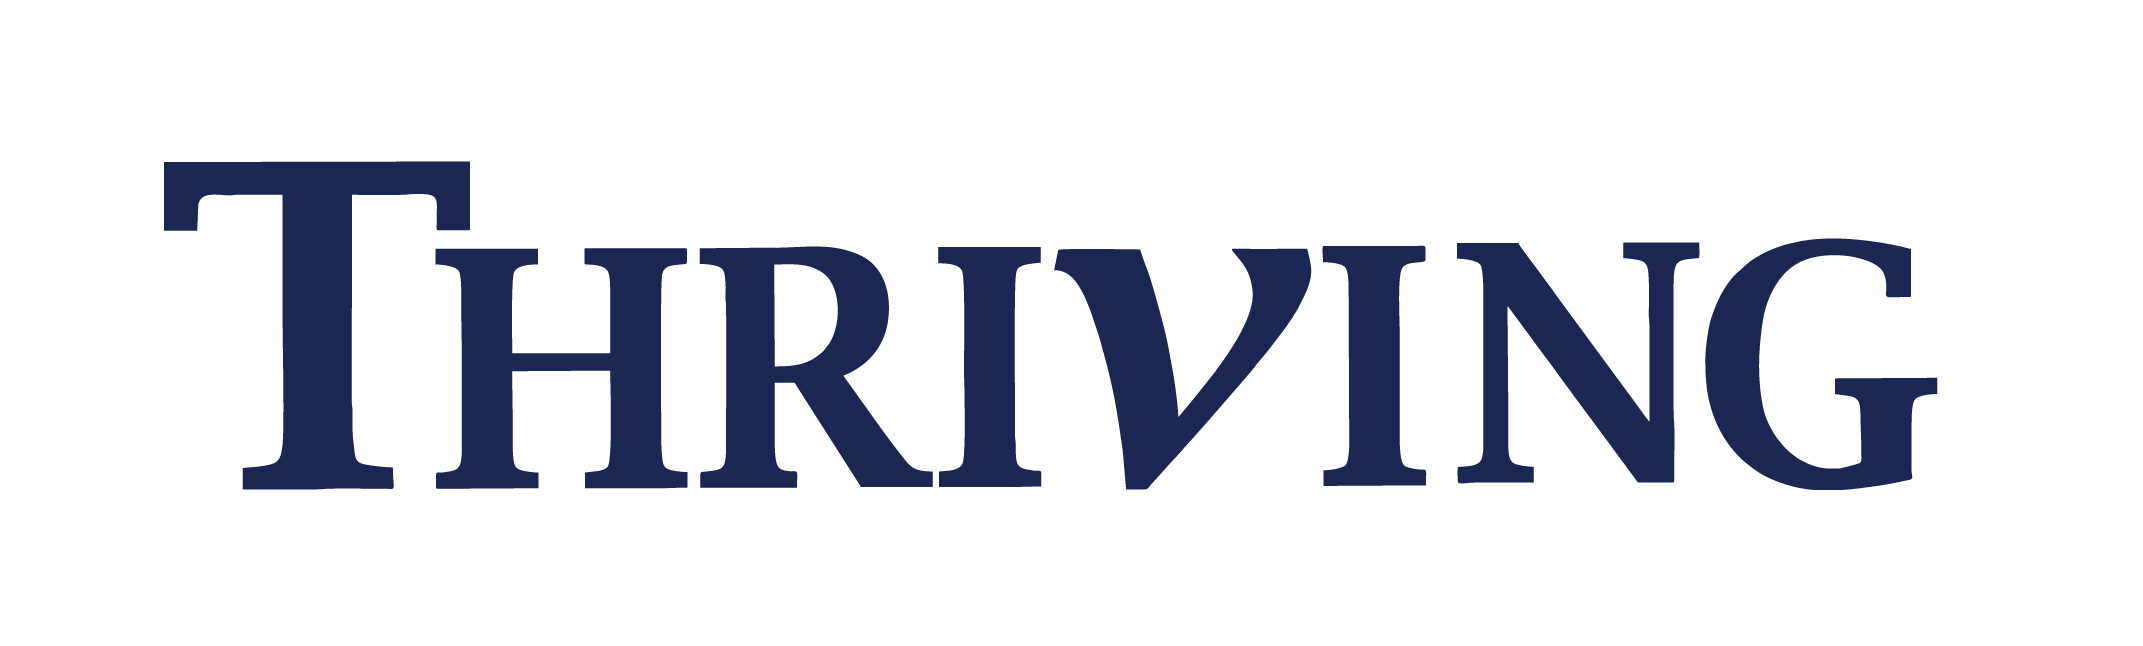 Thriving logo.png